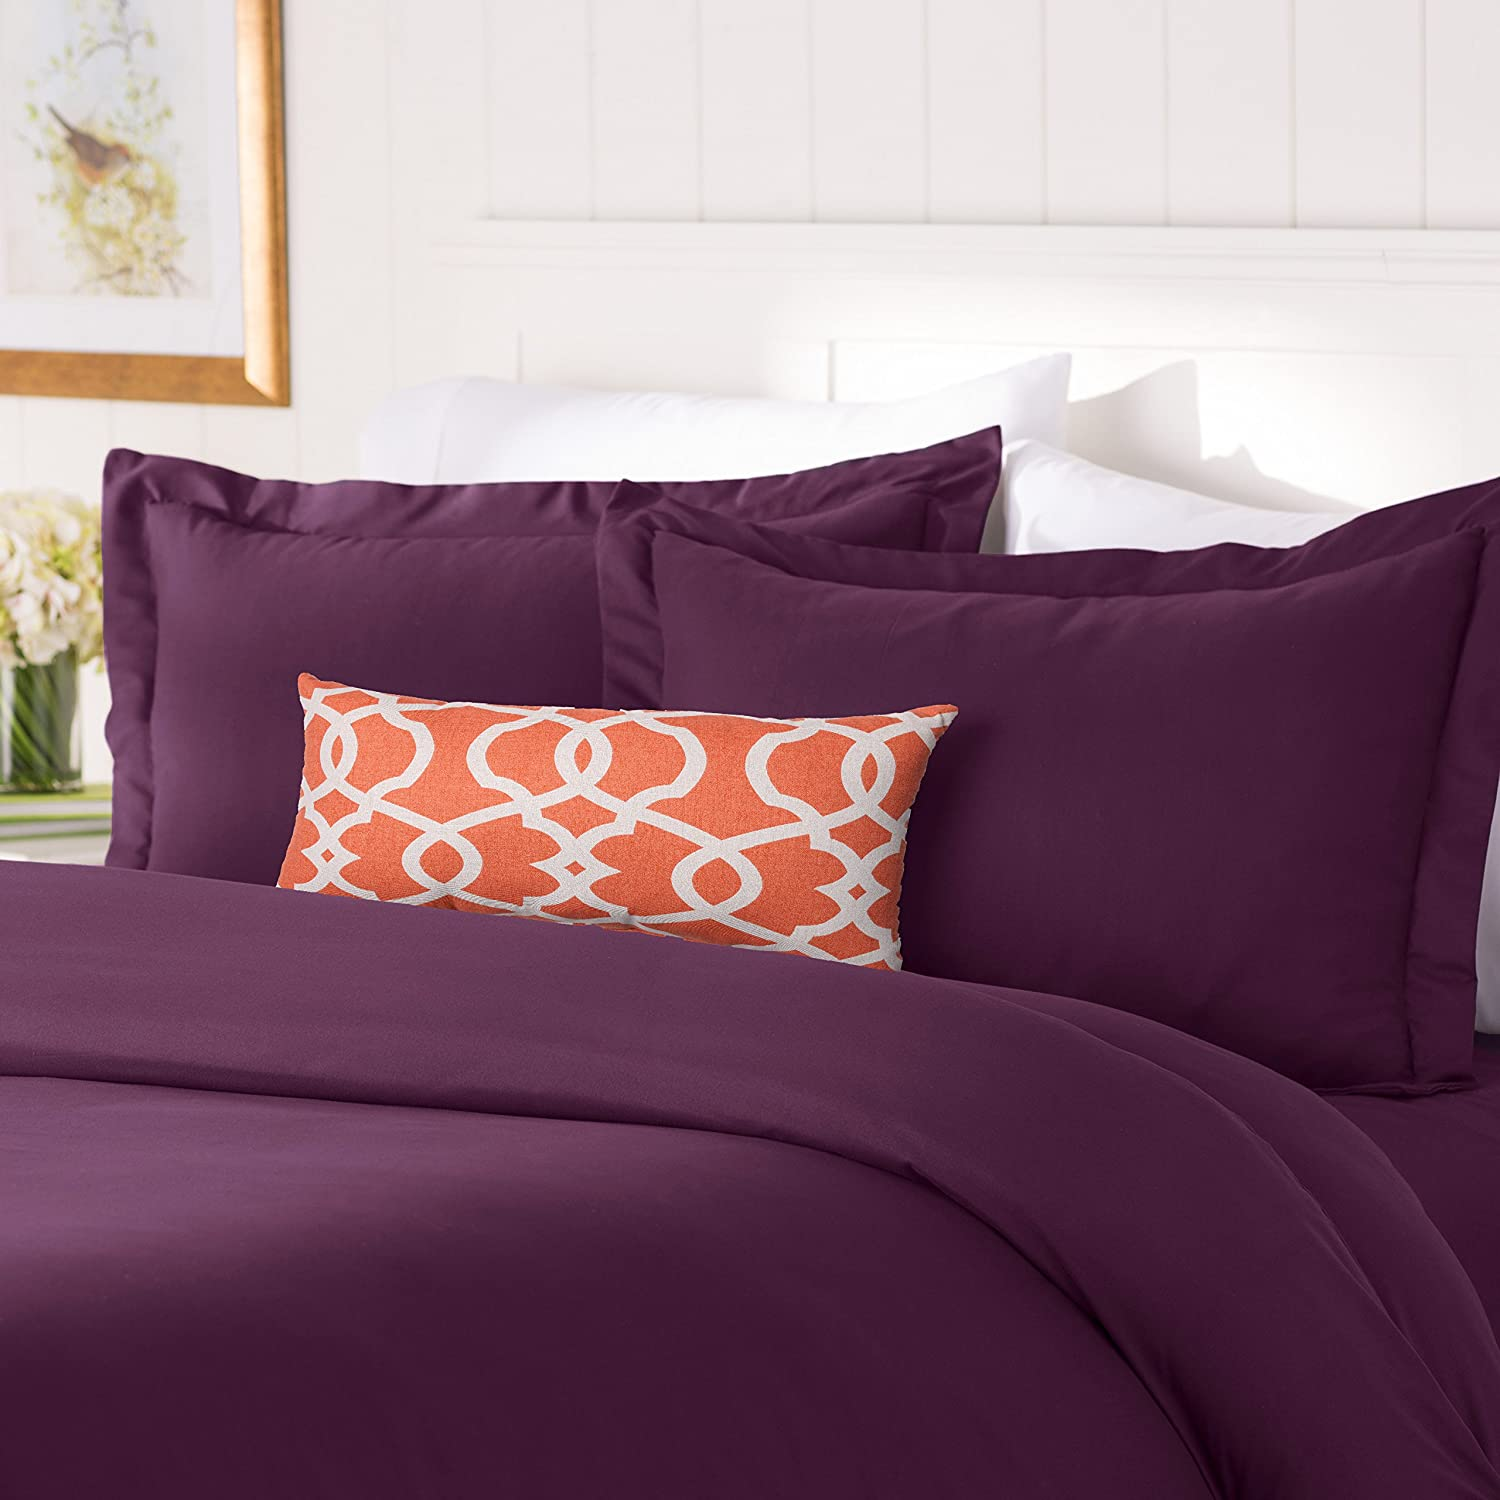 Elegant Comfort #1 Best Bedding Duvet Cover Set